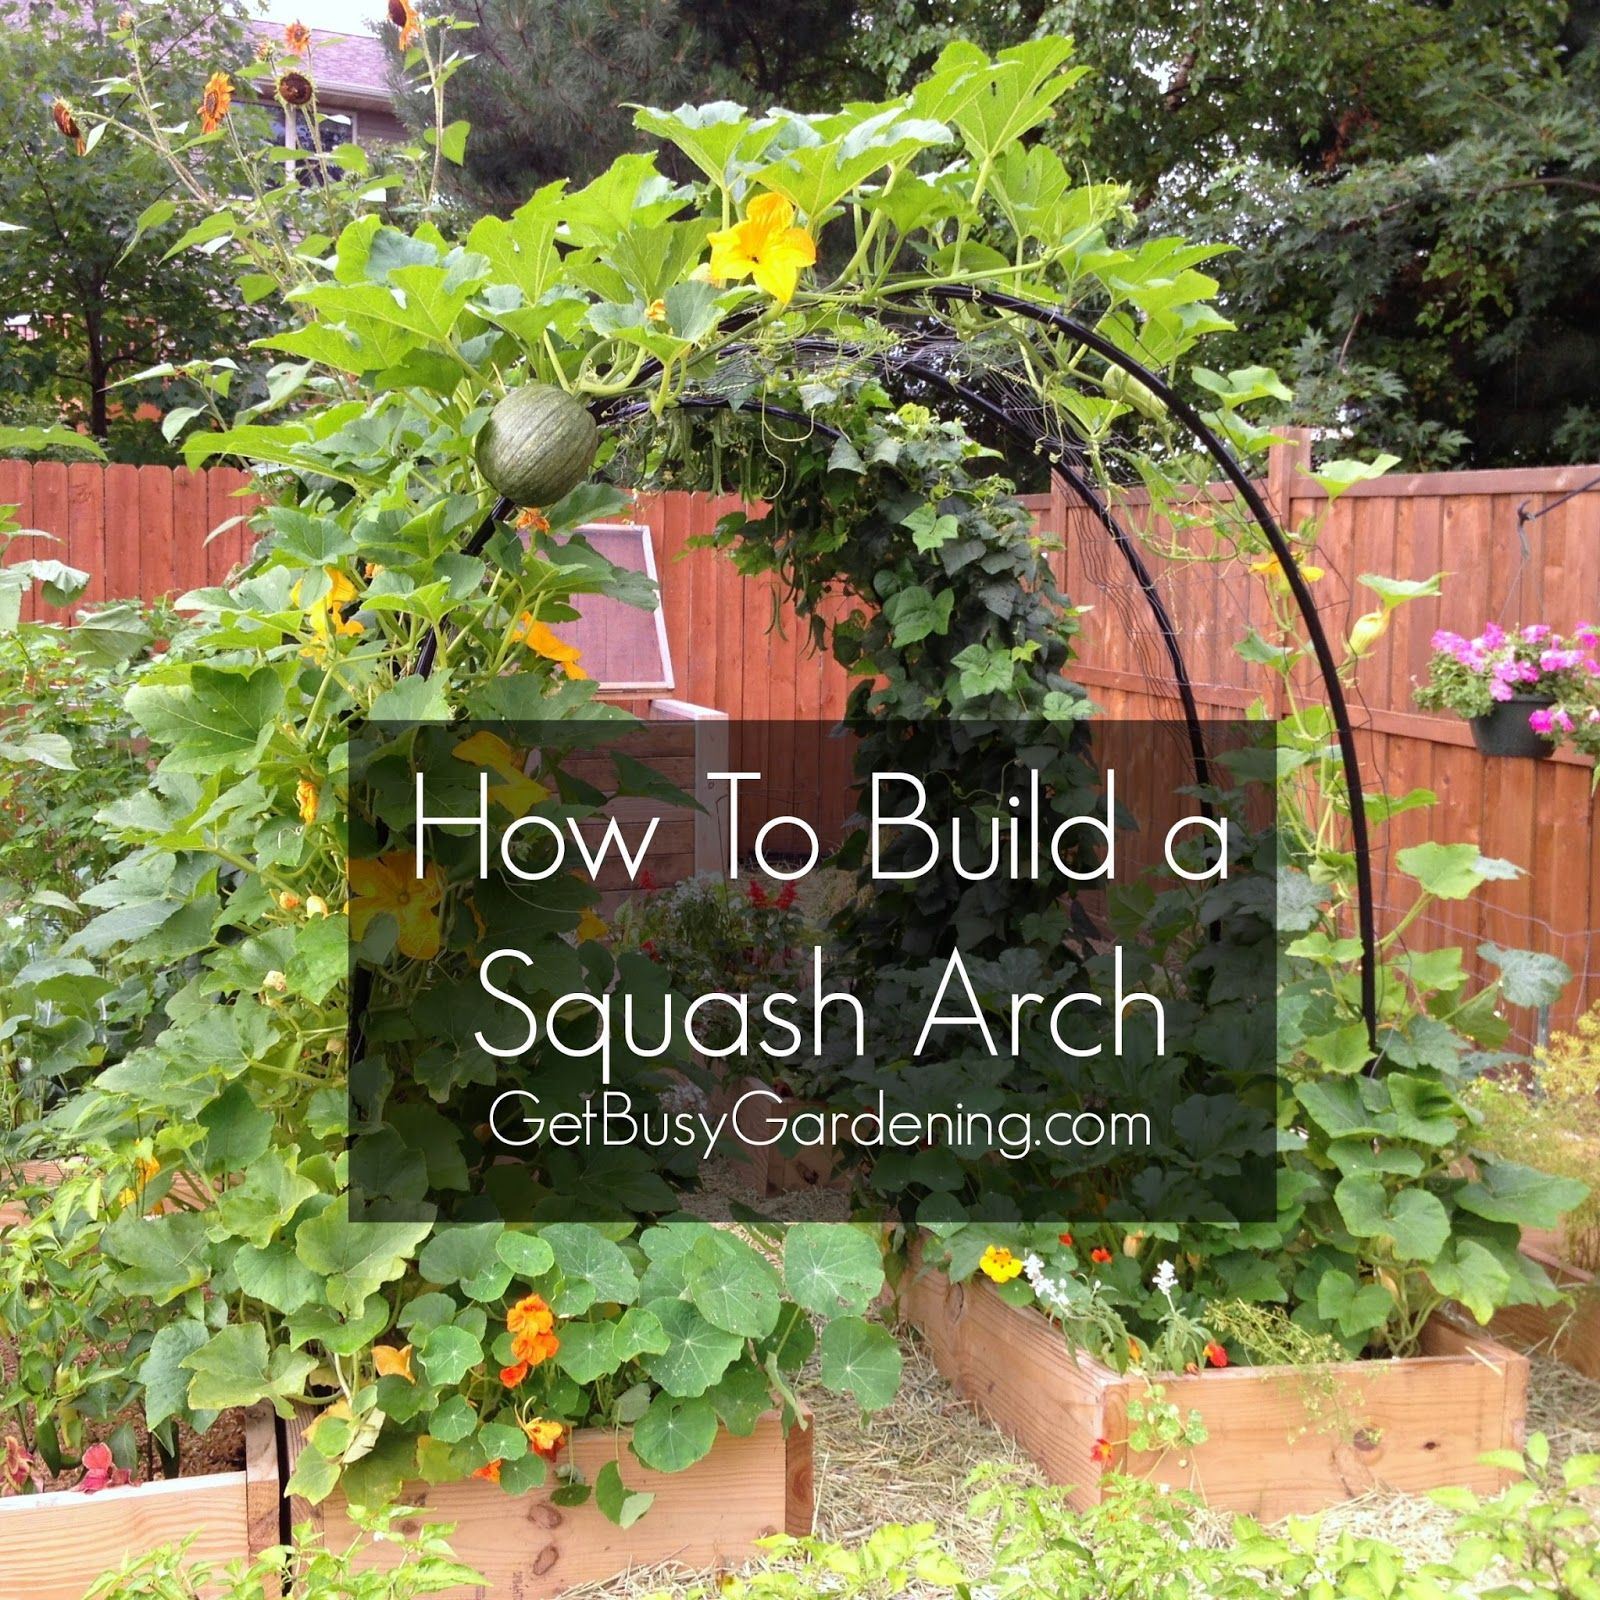 Vegetable Trellis Ideas Part - 18: This Could Be A Great Idea! How To Build A Squash Arch